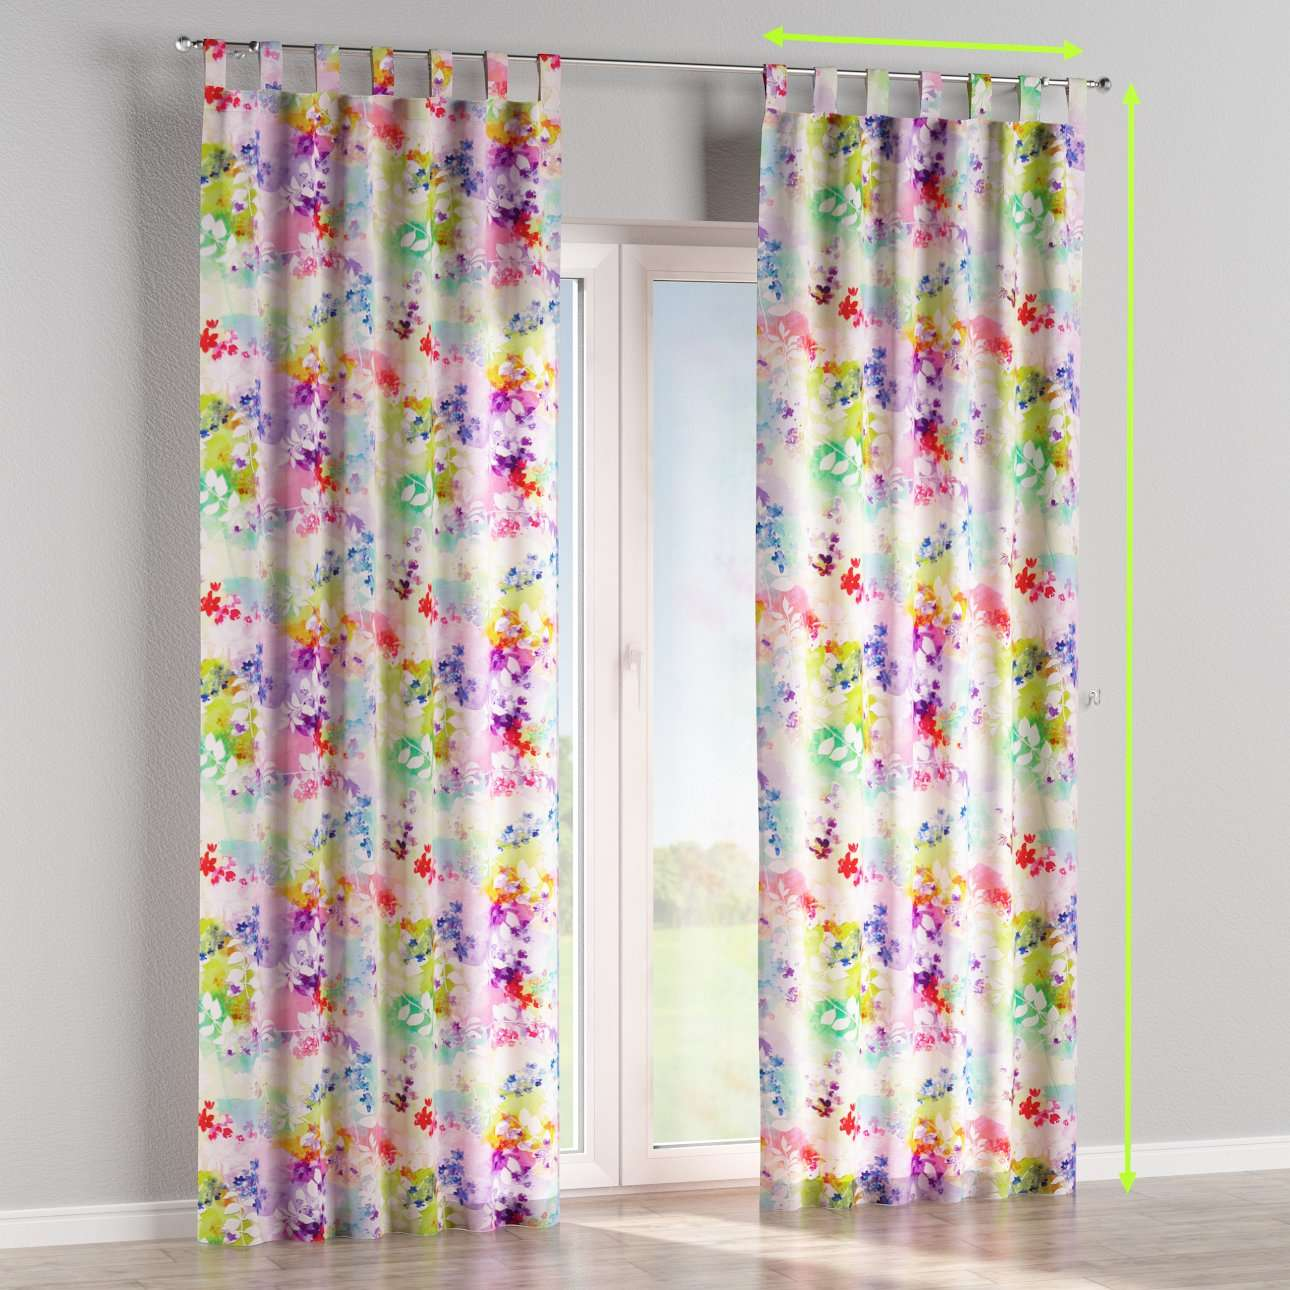 Tab top lined curtains in collection Monet, fabric: 140-07